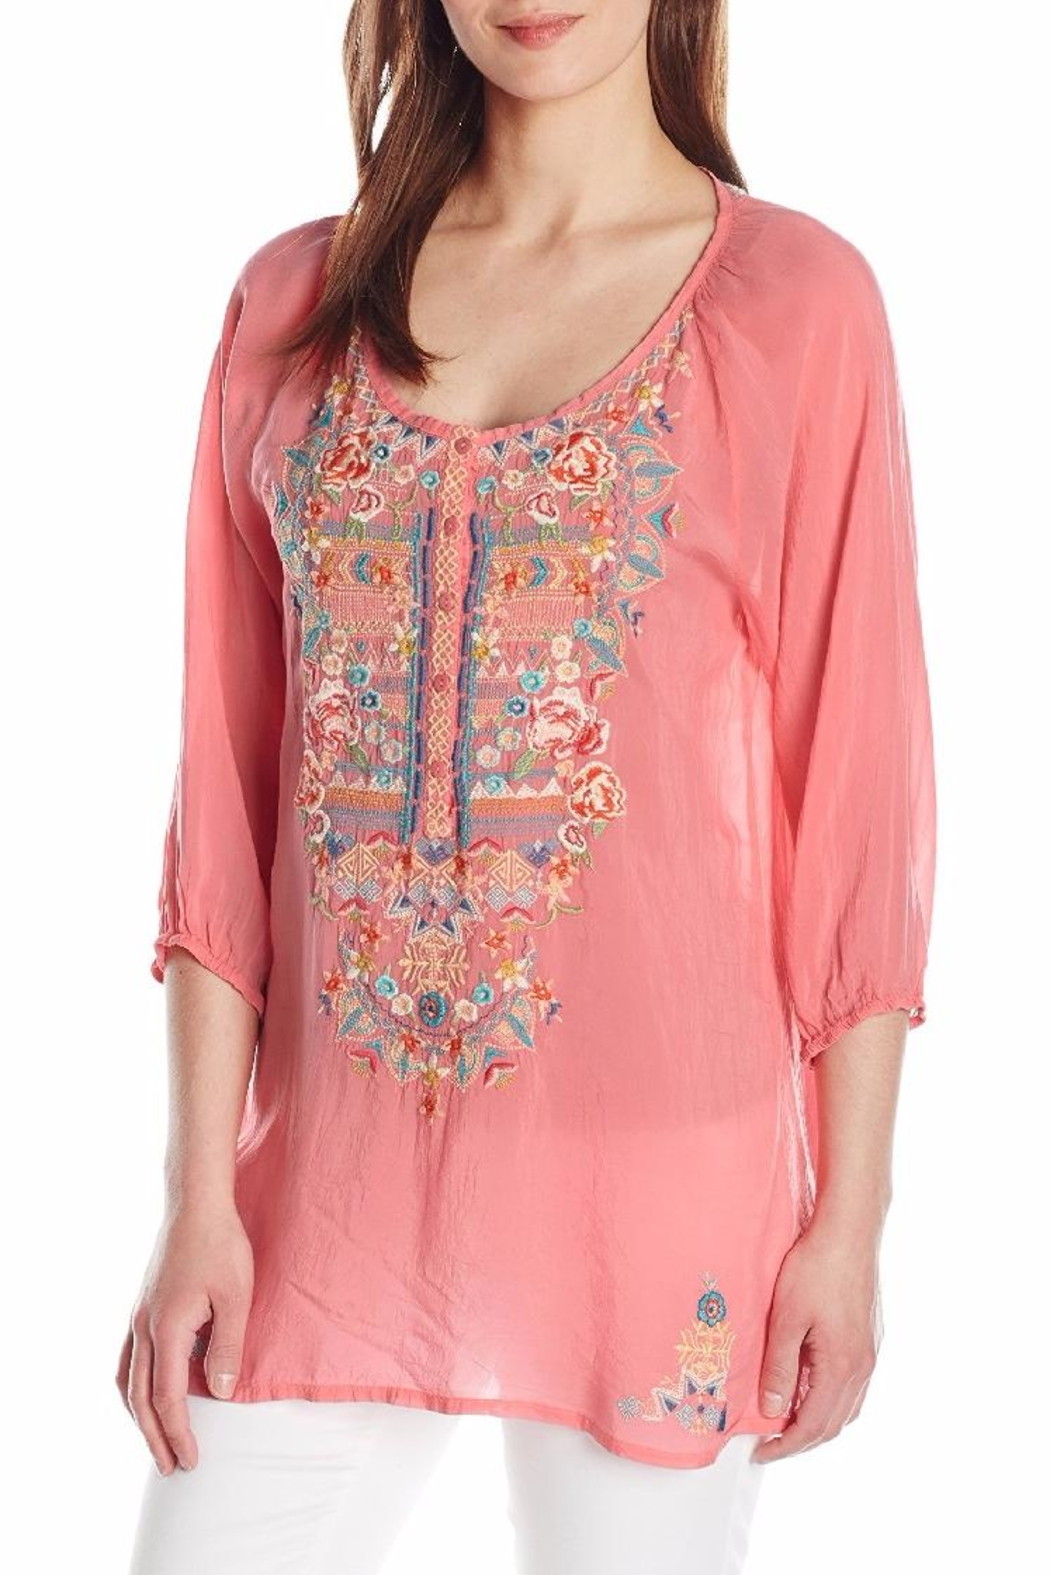 Johnny Was Linnet Blouse - Main Image